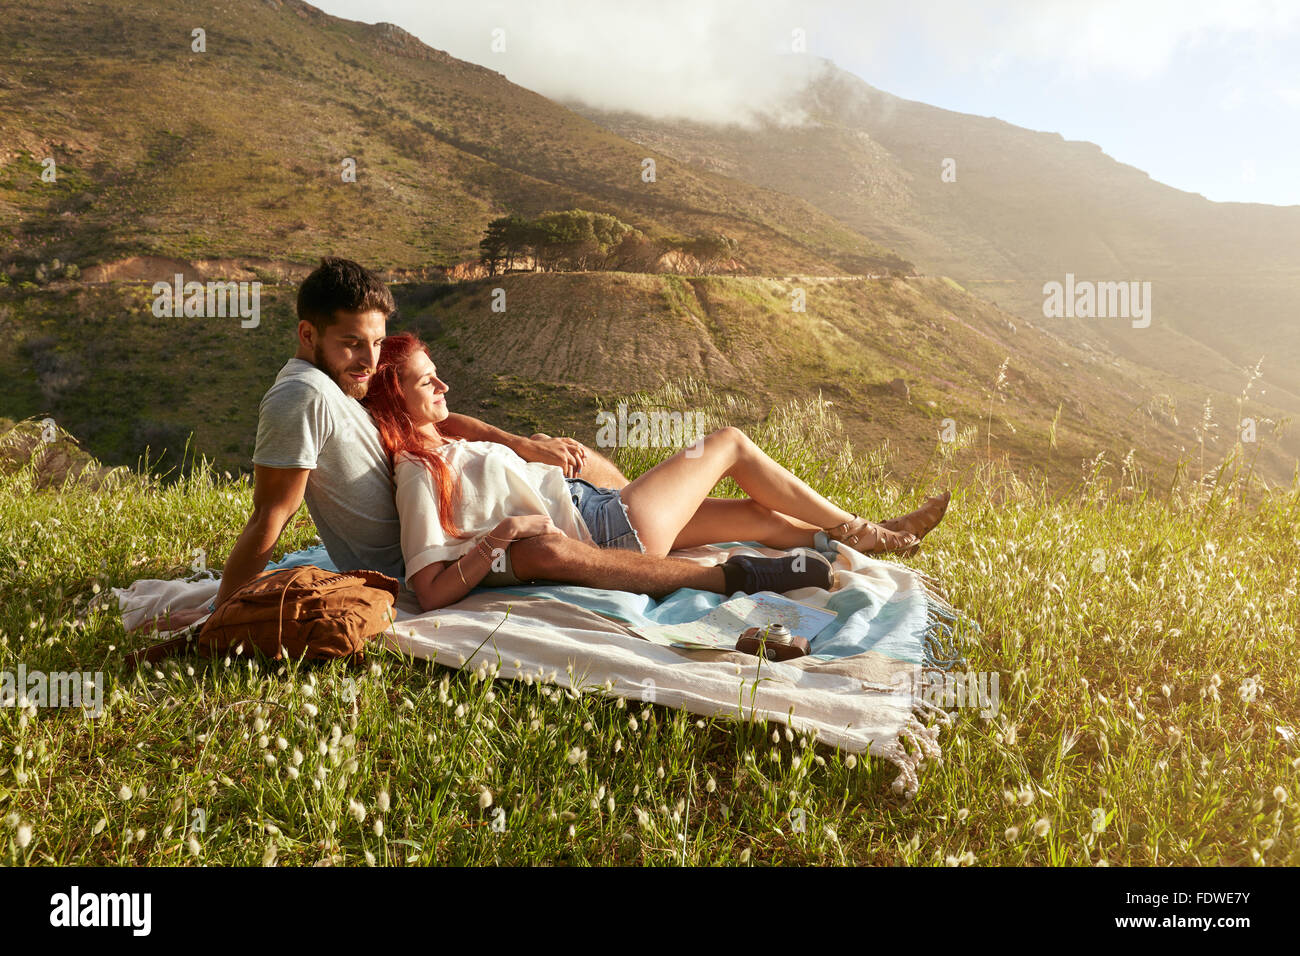 Happy young couple on picnic blanket. They are relaxing together on a summer day. - Stock Image